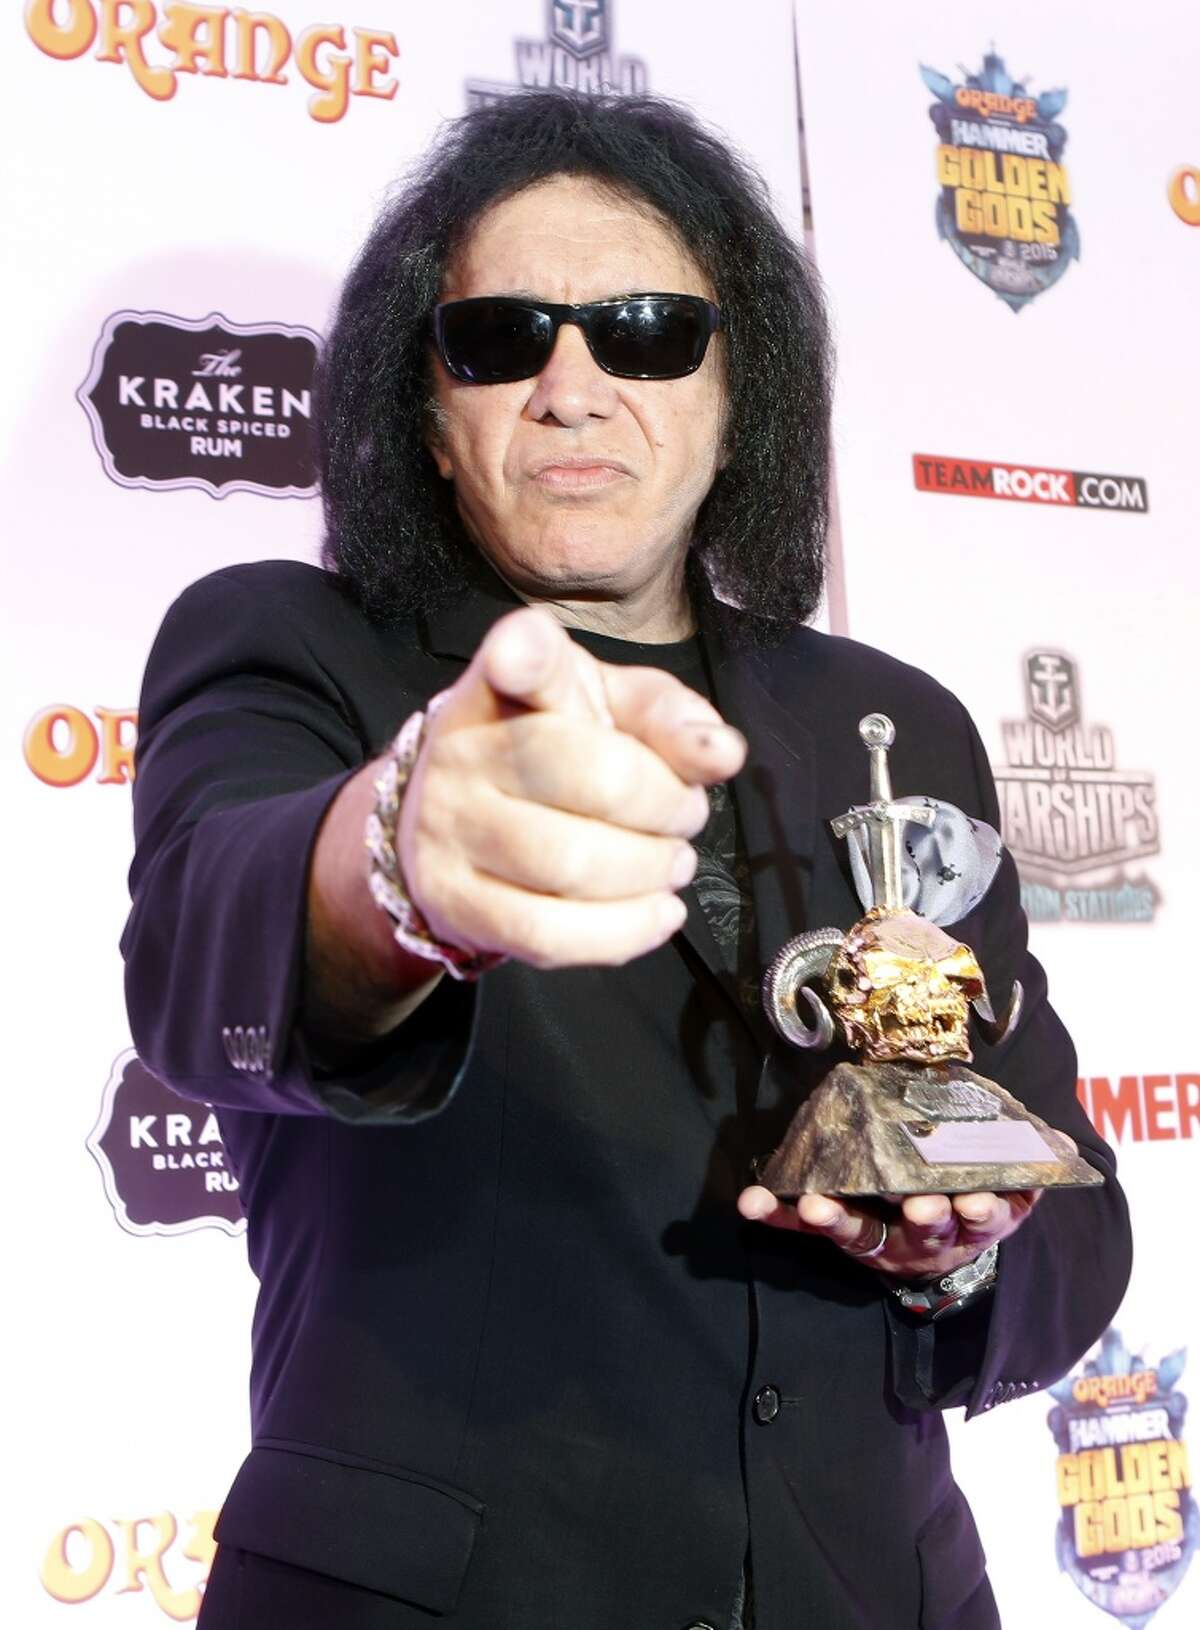 Gene Simmons The KISS star's wife said neither Simmons nor any member of KISS will be performing at the Trump inauguration. She claims they were approached by Trump's team, but no one from the Trump team has indicated they did so.